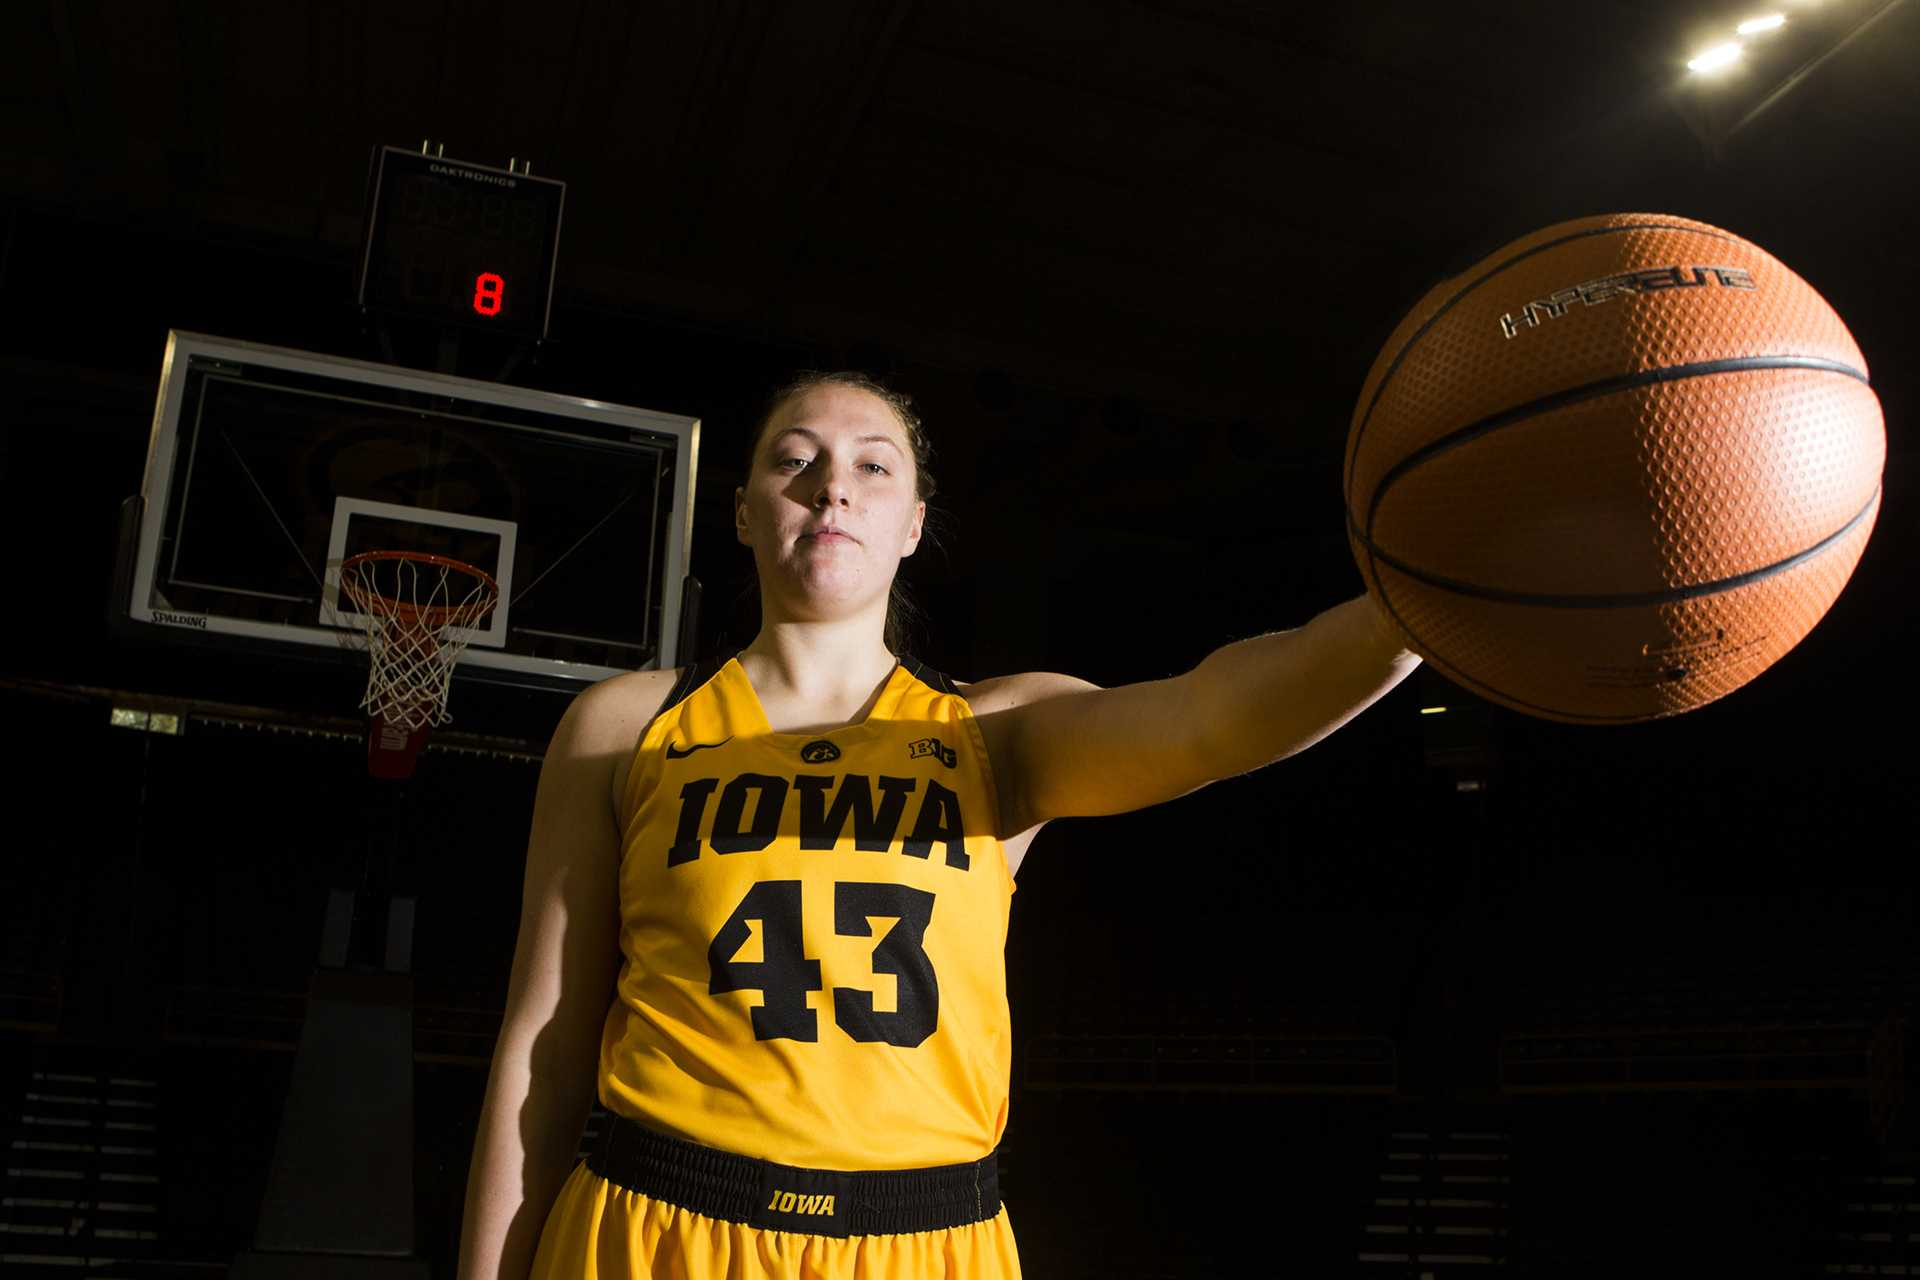 Iowa sophomore center Amanda Ollinger poses for a portrait during the women's basketball media in Carver-Hawkeye Arena on Monday, Oct. 23, 2017.  (Joseph Cress/The Daily Iowan)